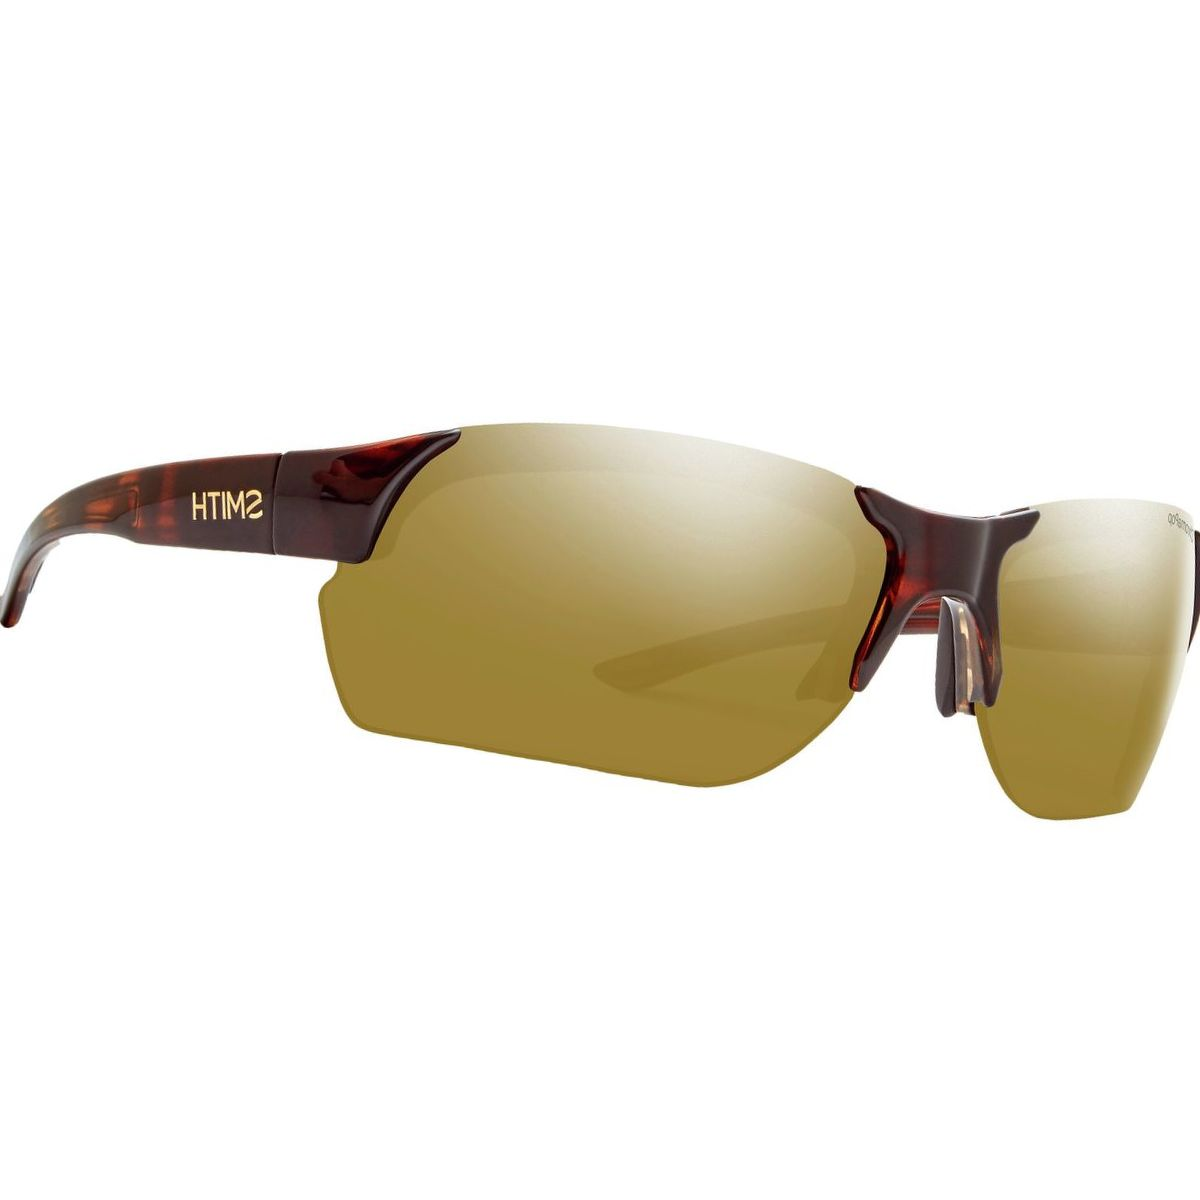 Smith Envoy Max ChromaPop Polarized Sunglasses - Men's